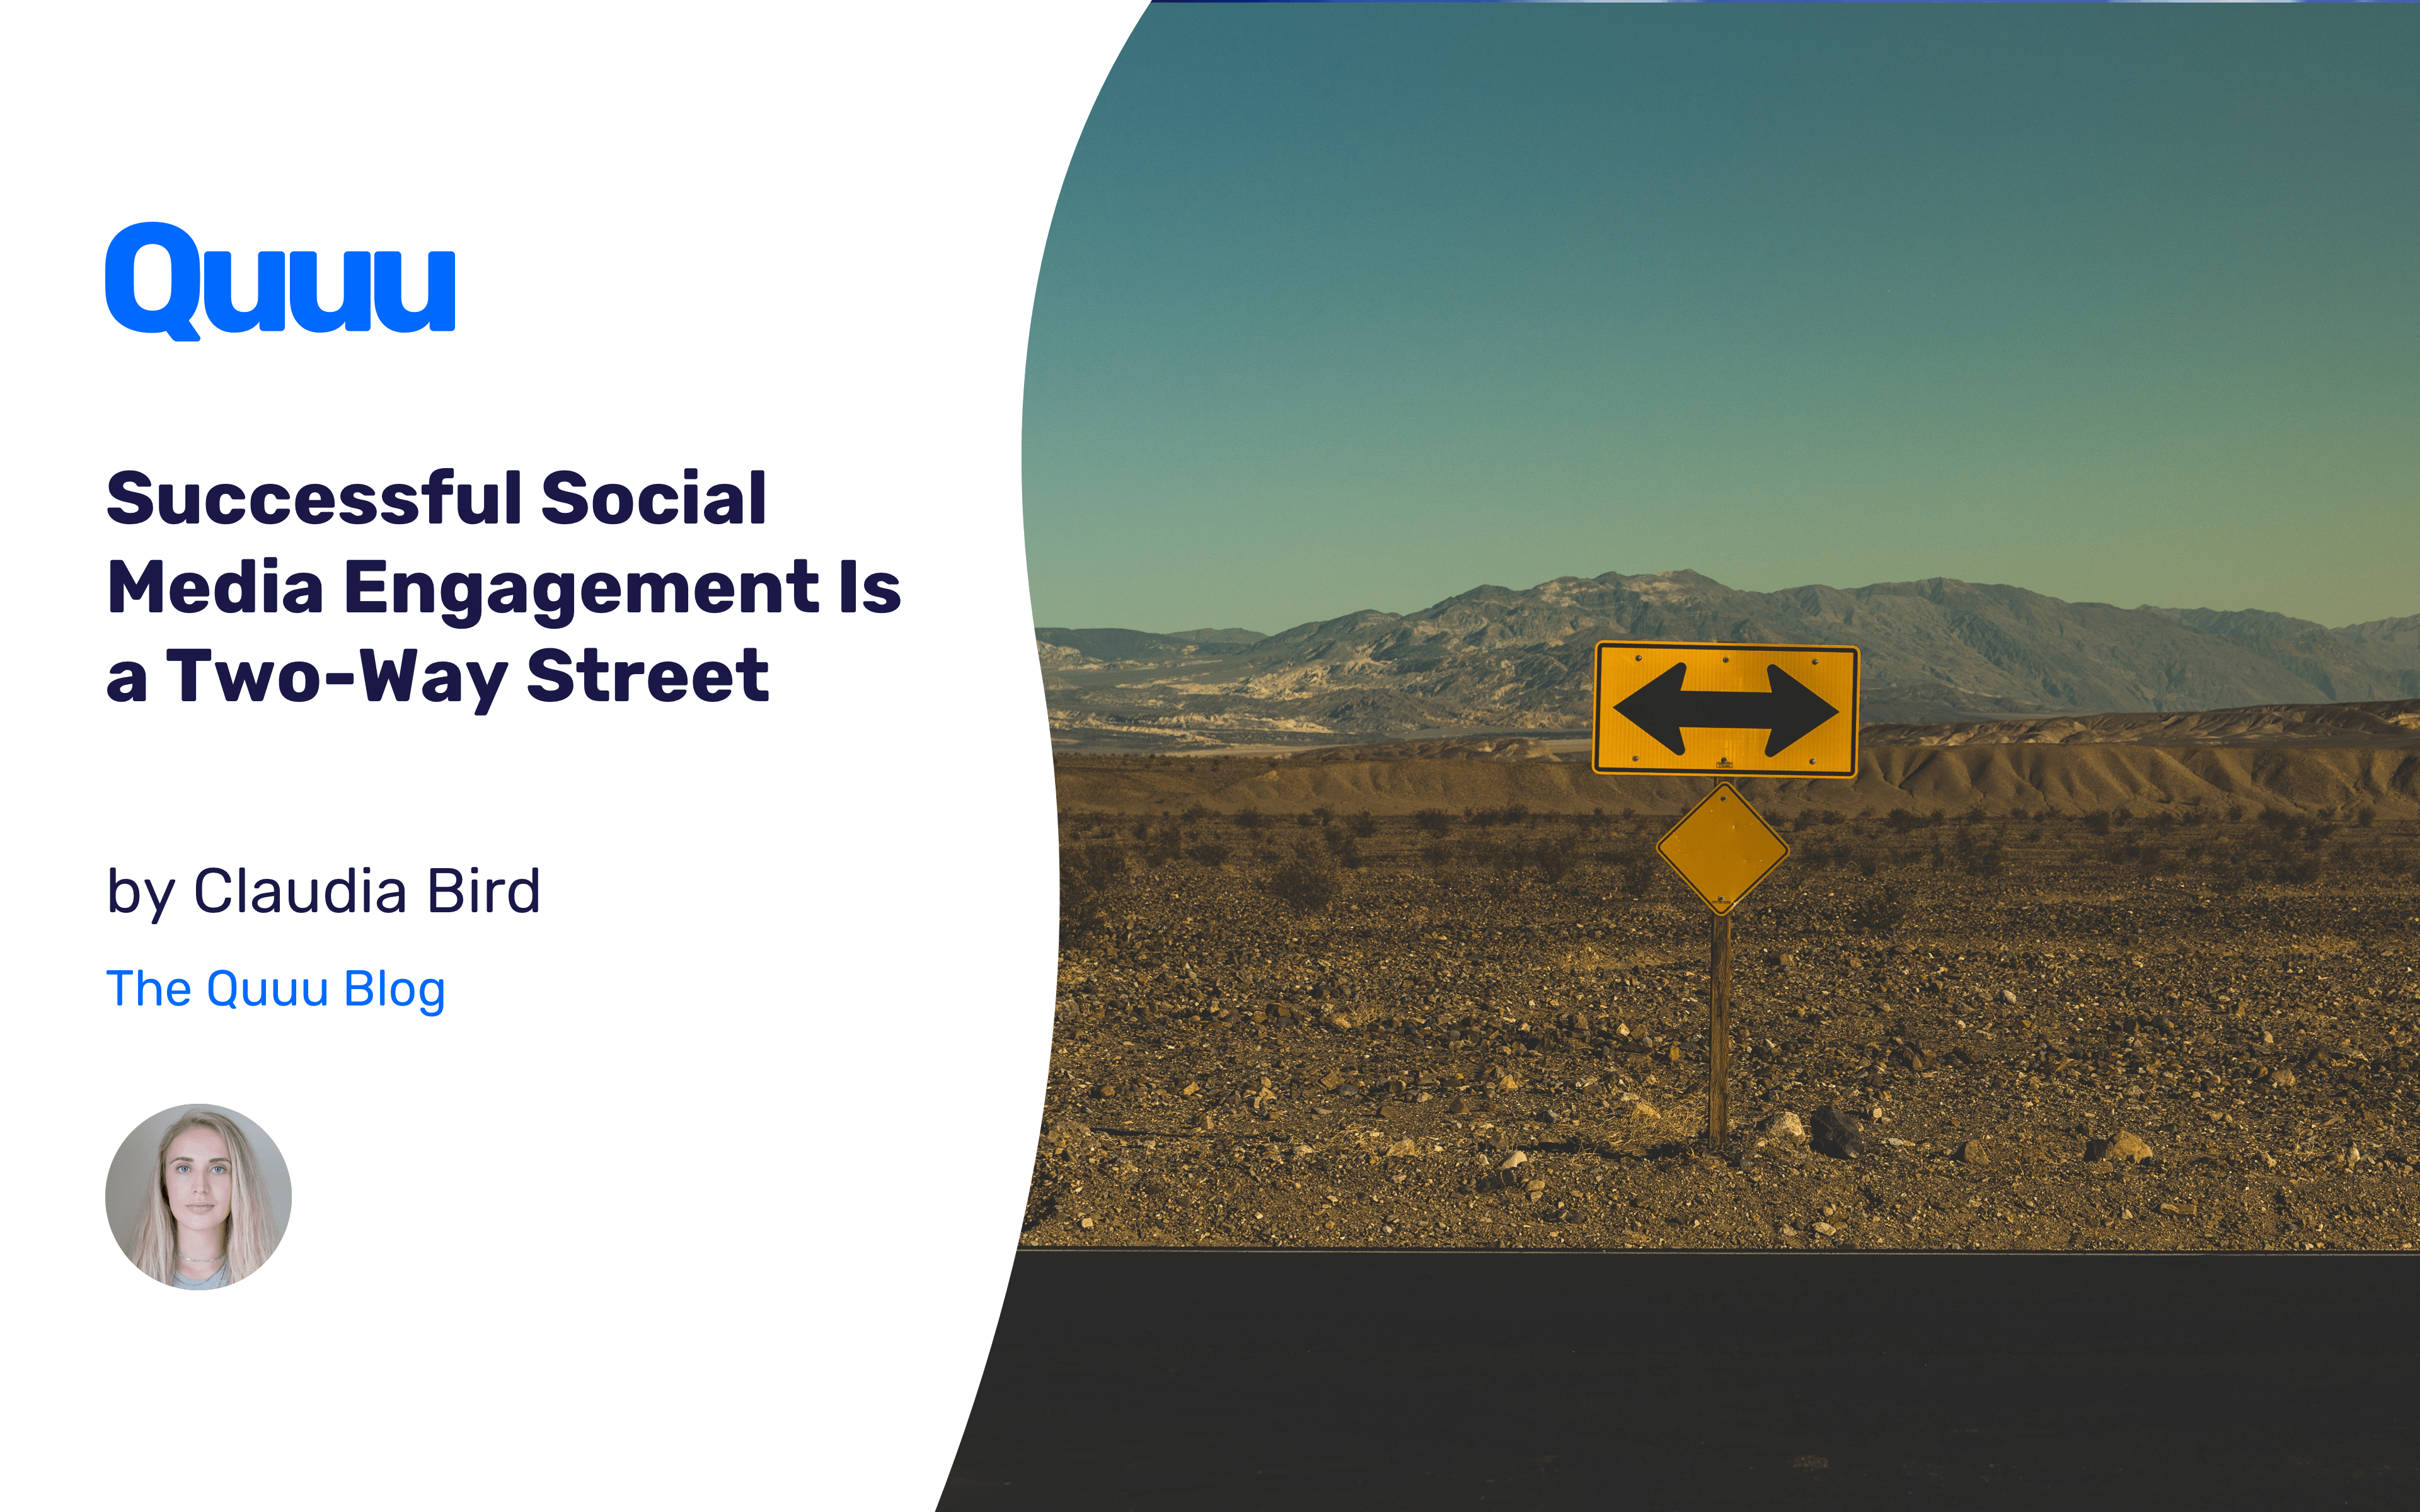 Successful Social Media Engagement Is a Two-Way Street